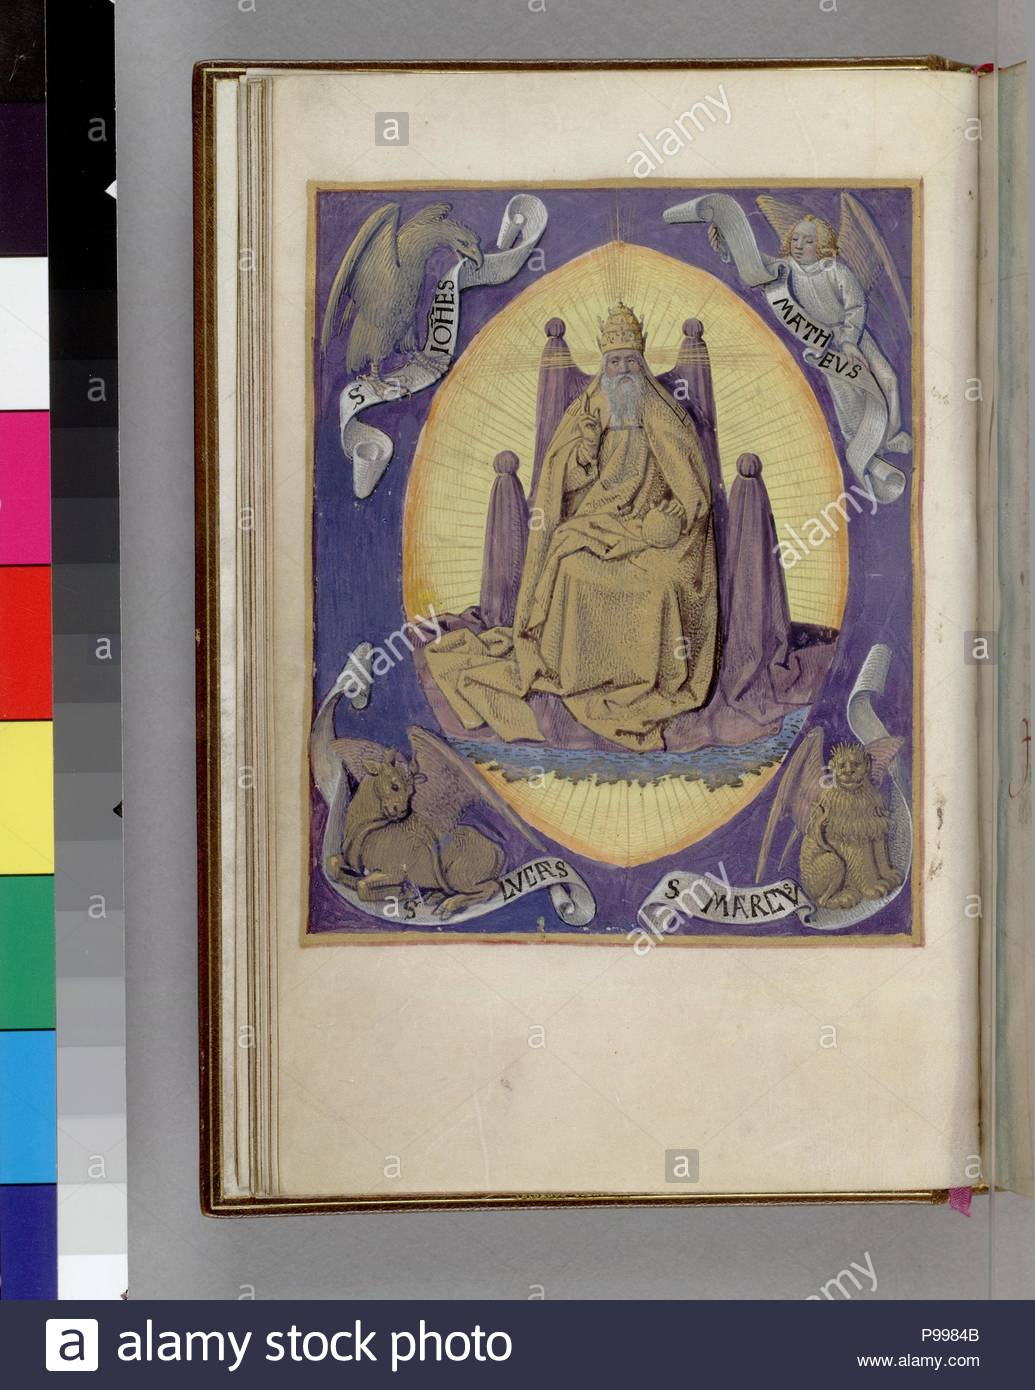 God The Father With Symbols Of The Four Evangelists In The Corners